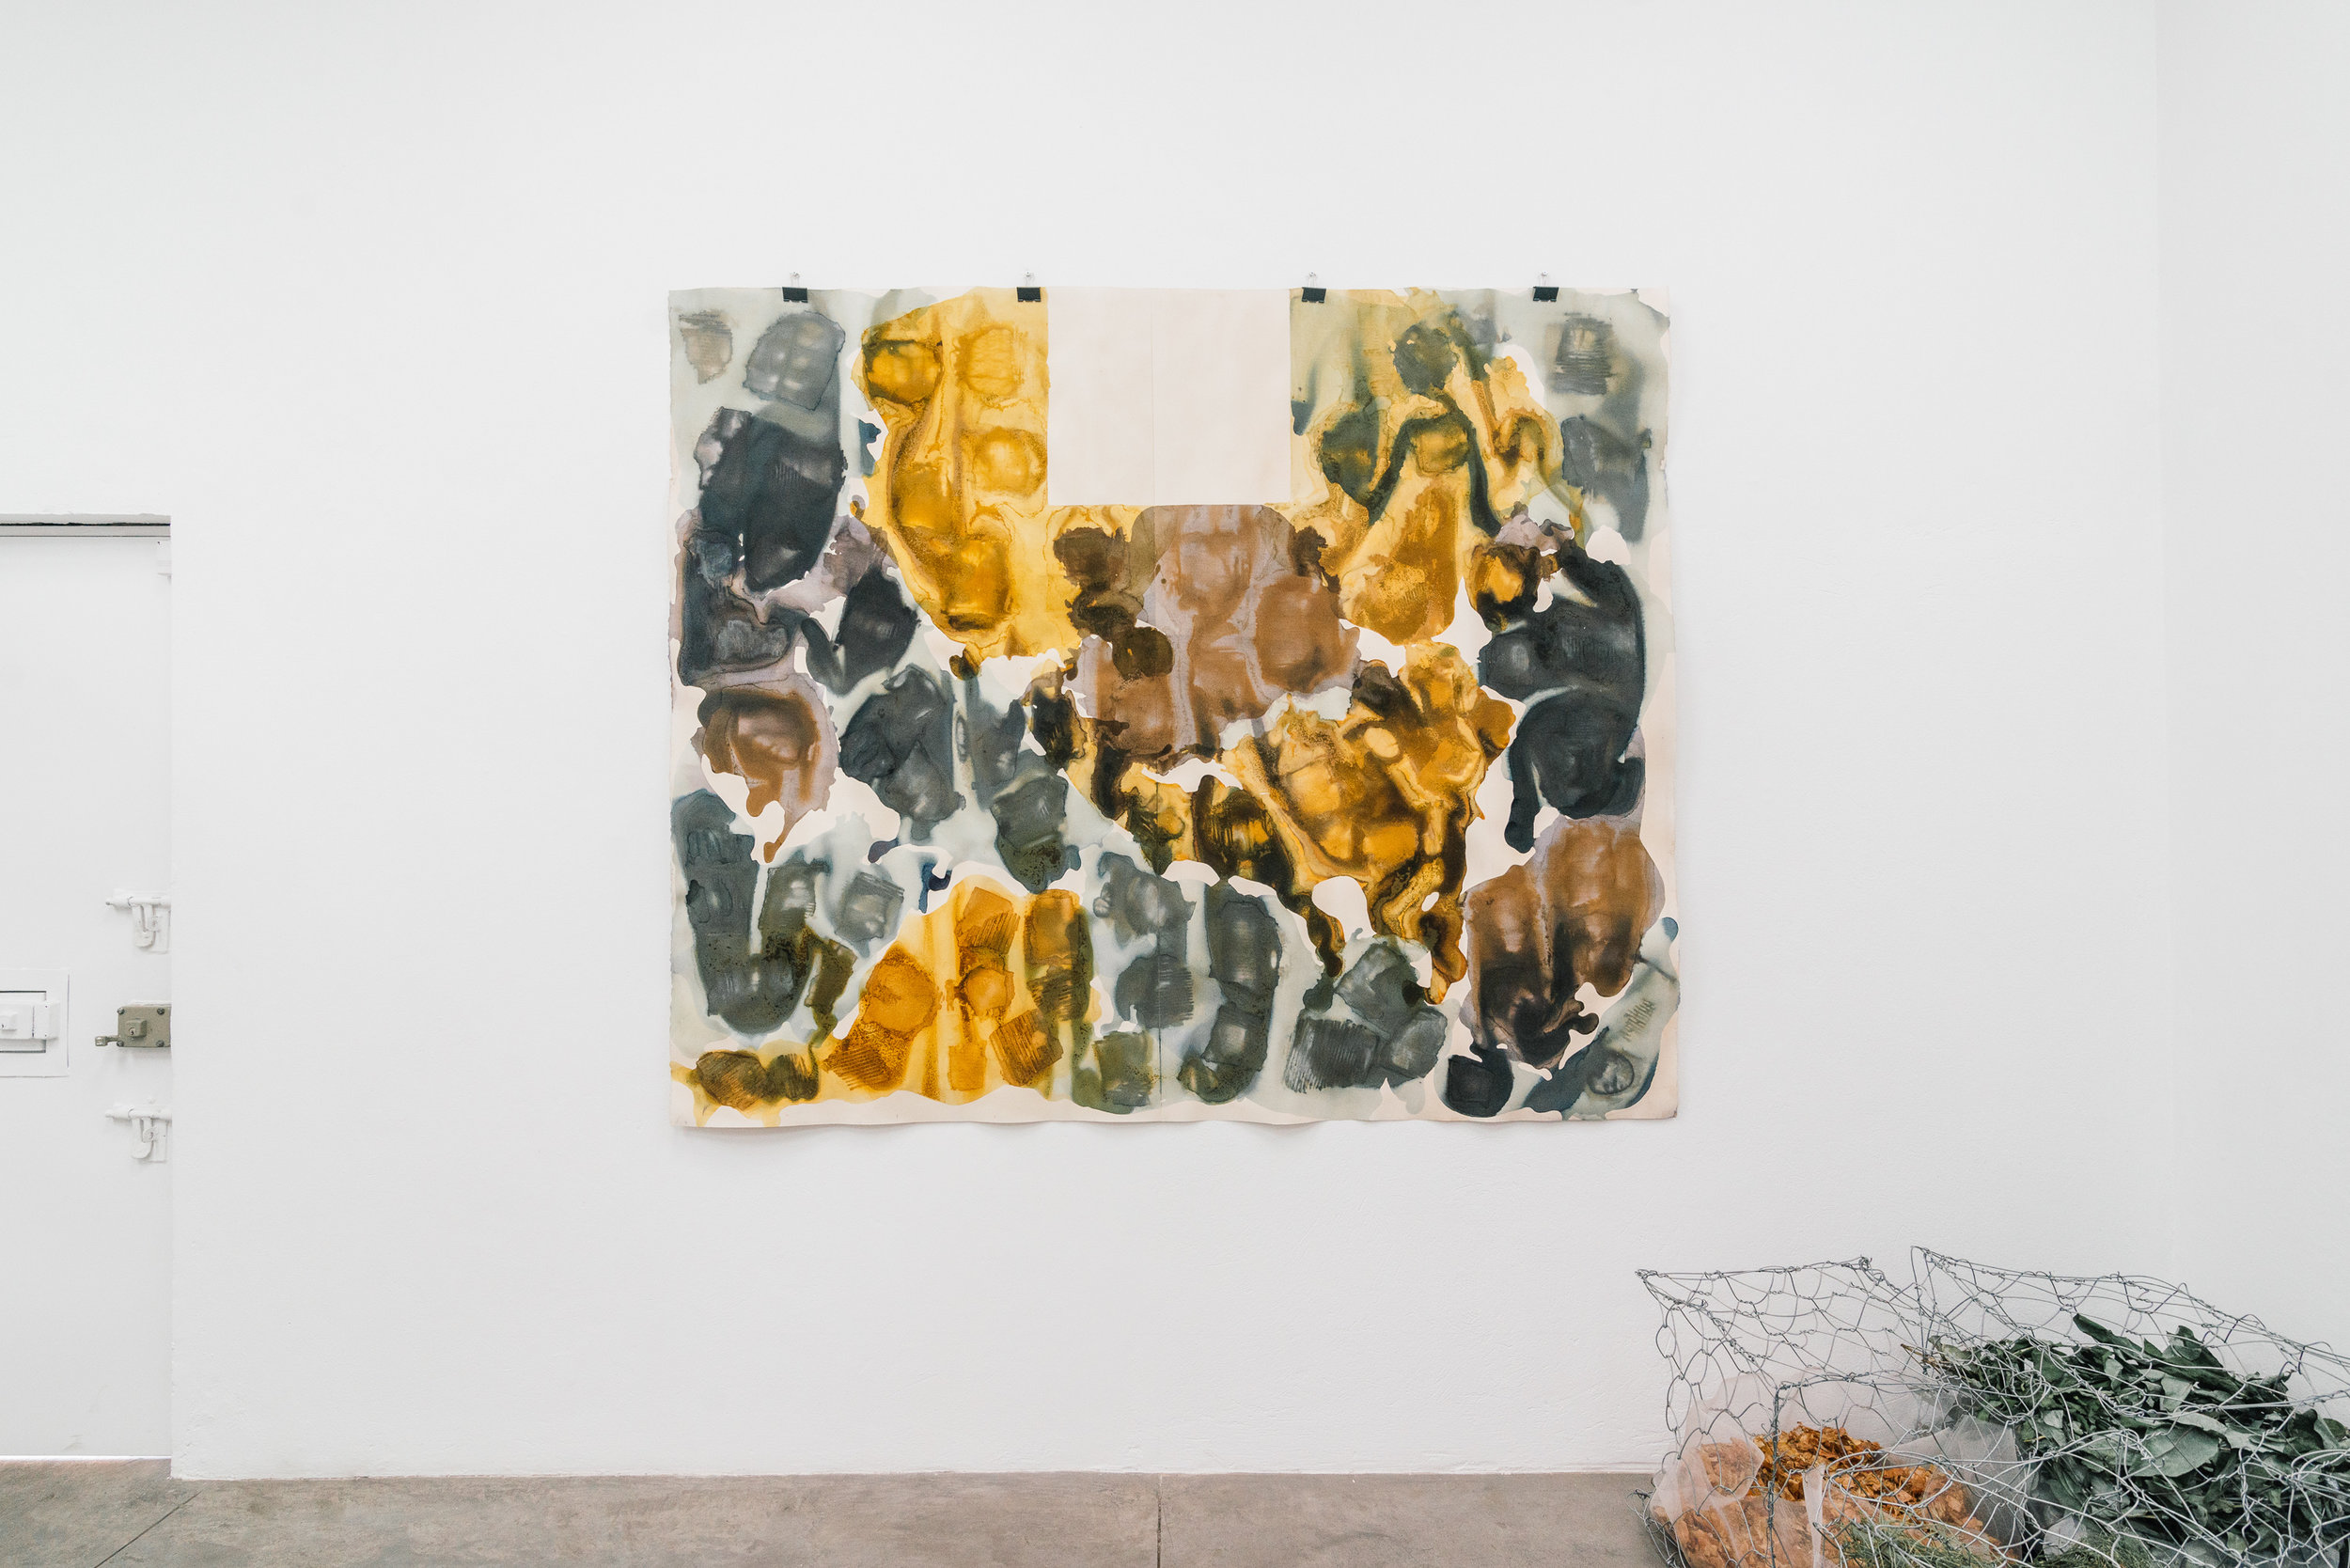 Carmen Argote,  Arrangement of Contained Energies , 2018, Organic dyes (Jamaica, onion, avocado), Paper, 50 x 38 inches.